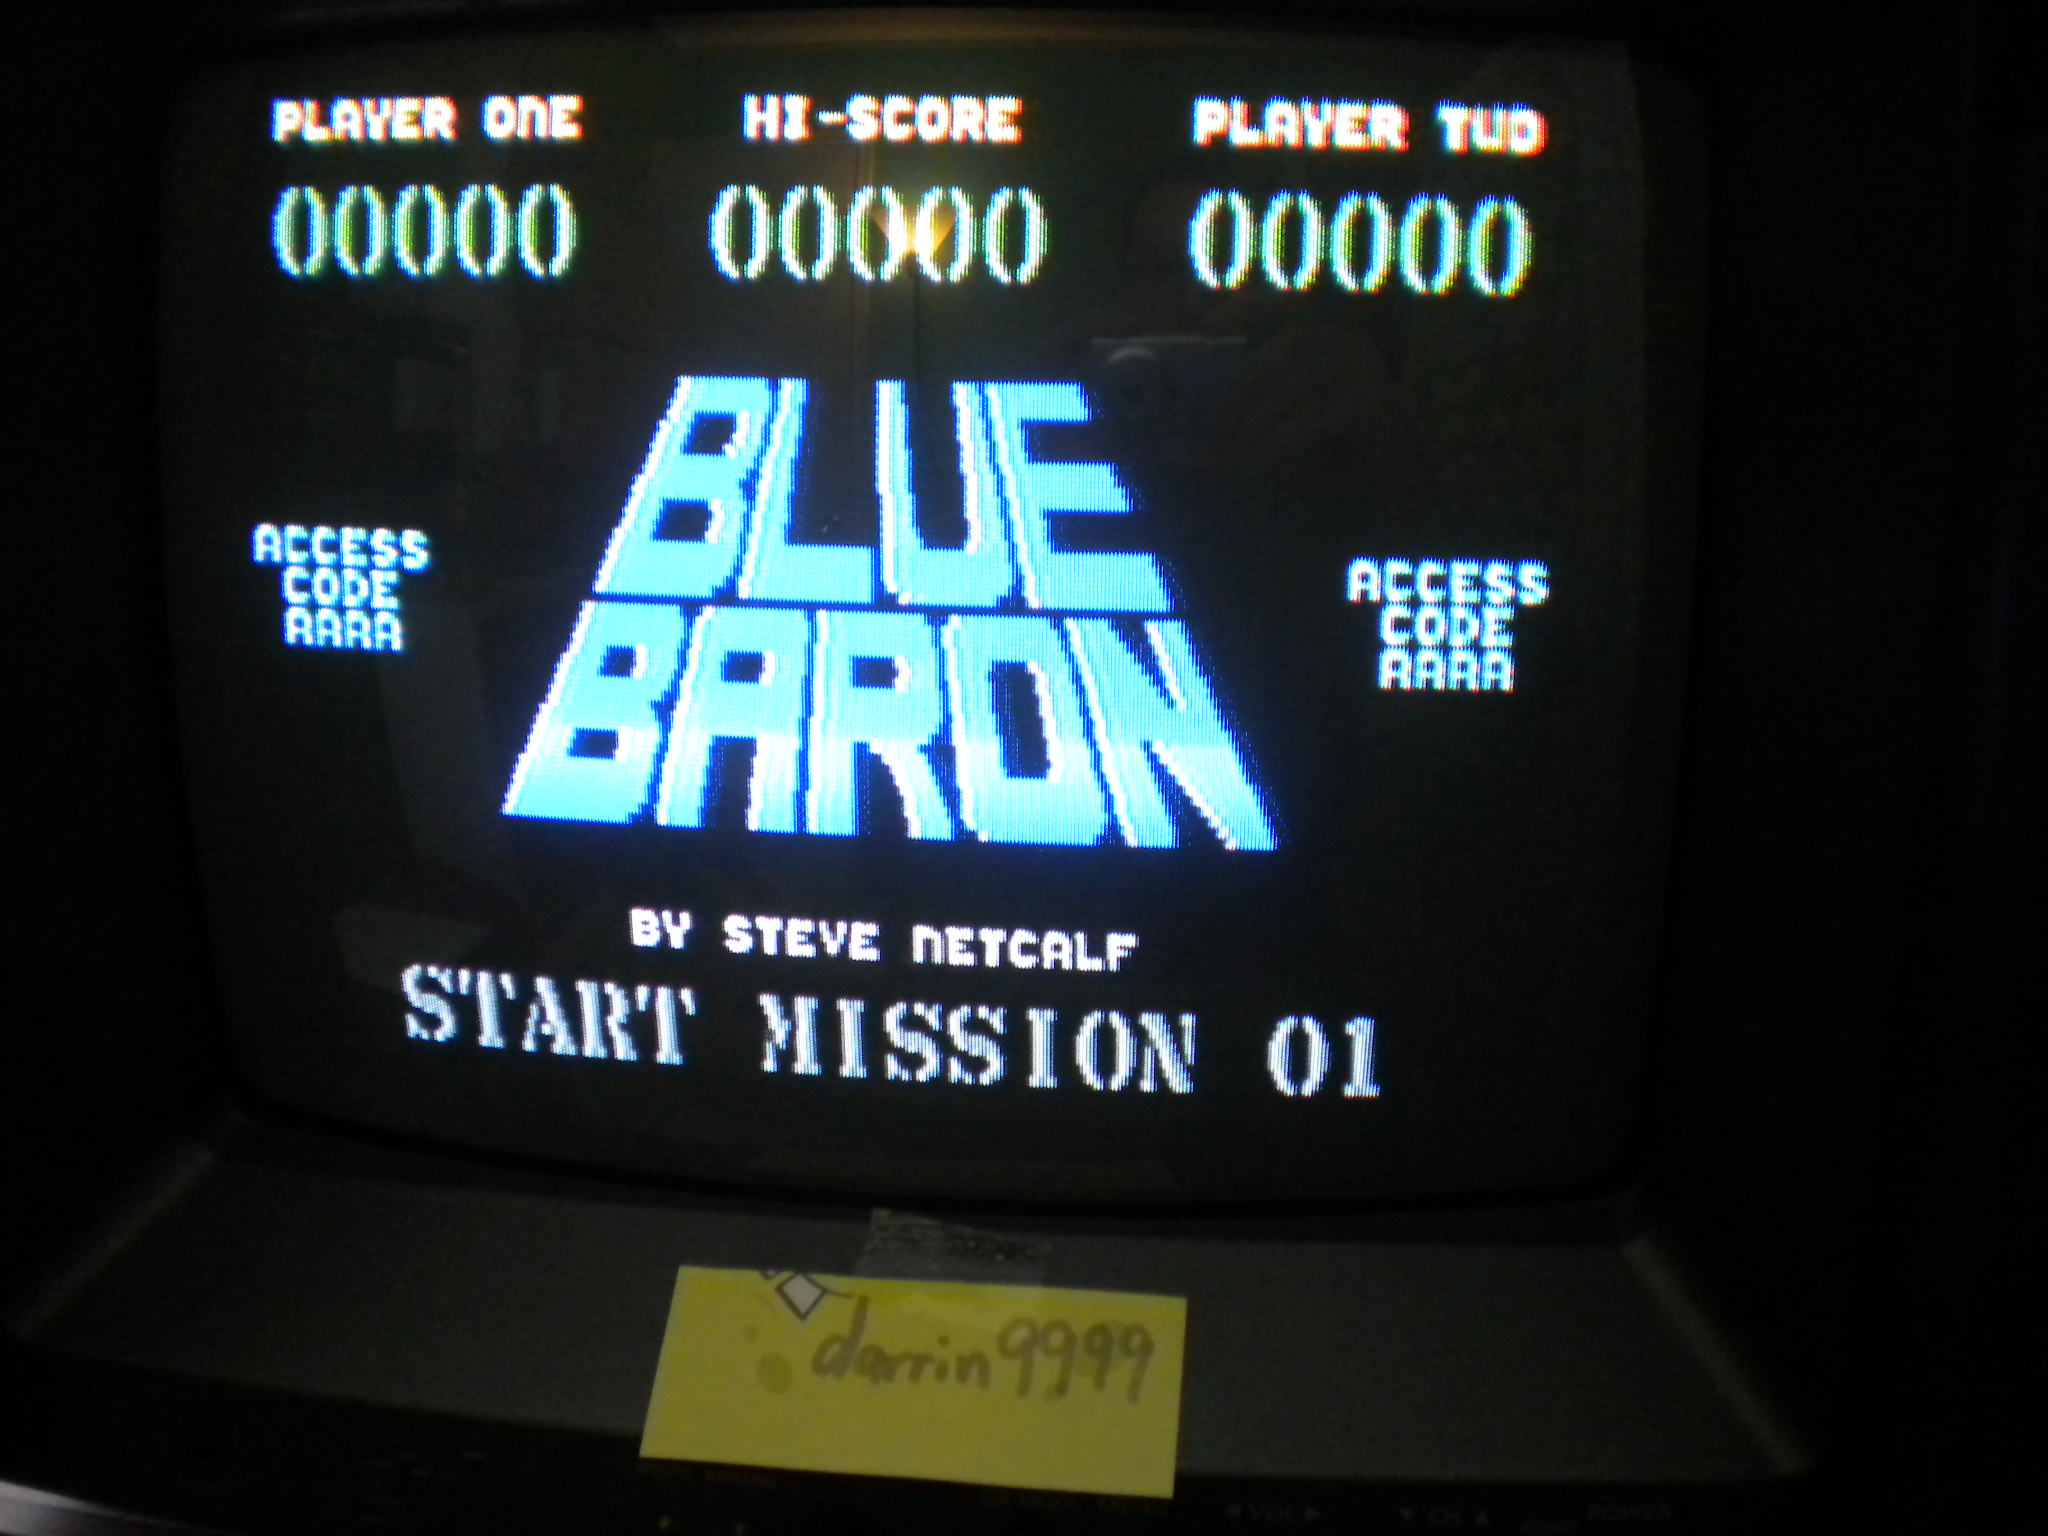 Blue Baron 1,320 points